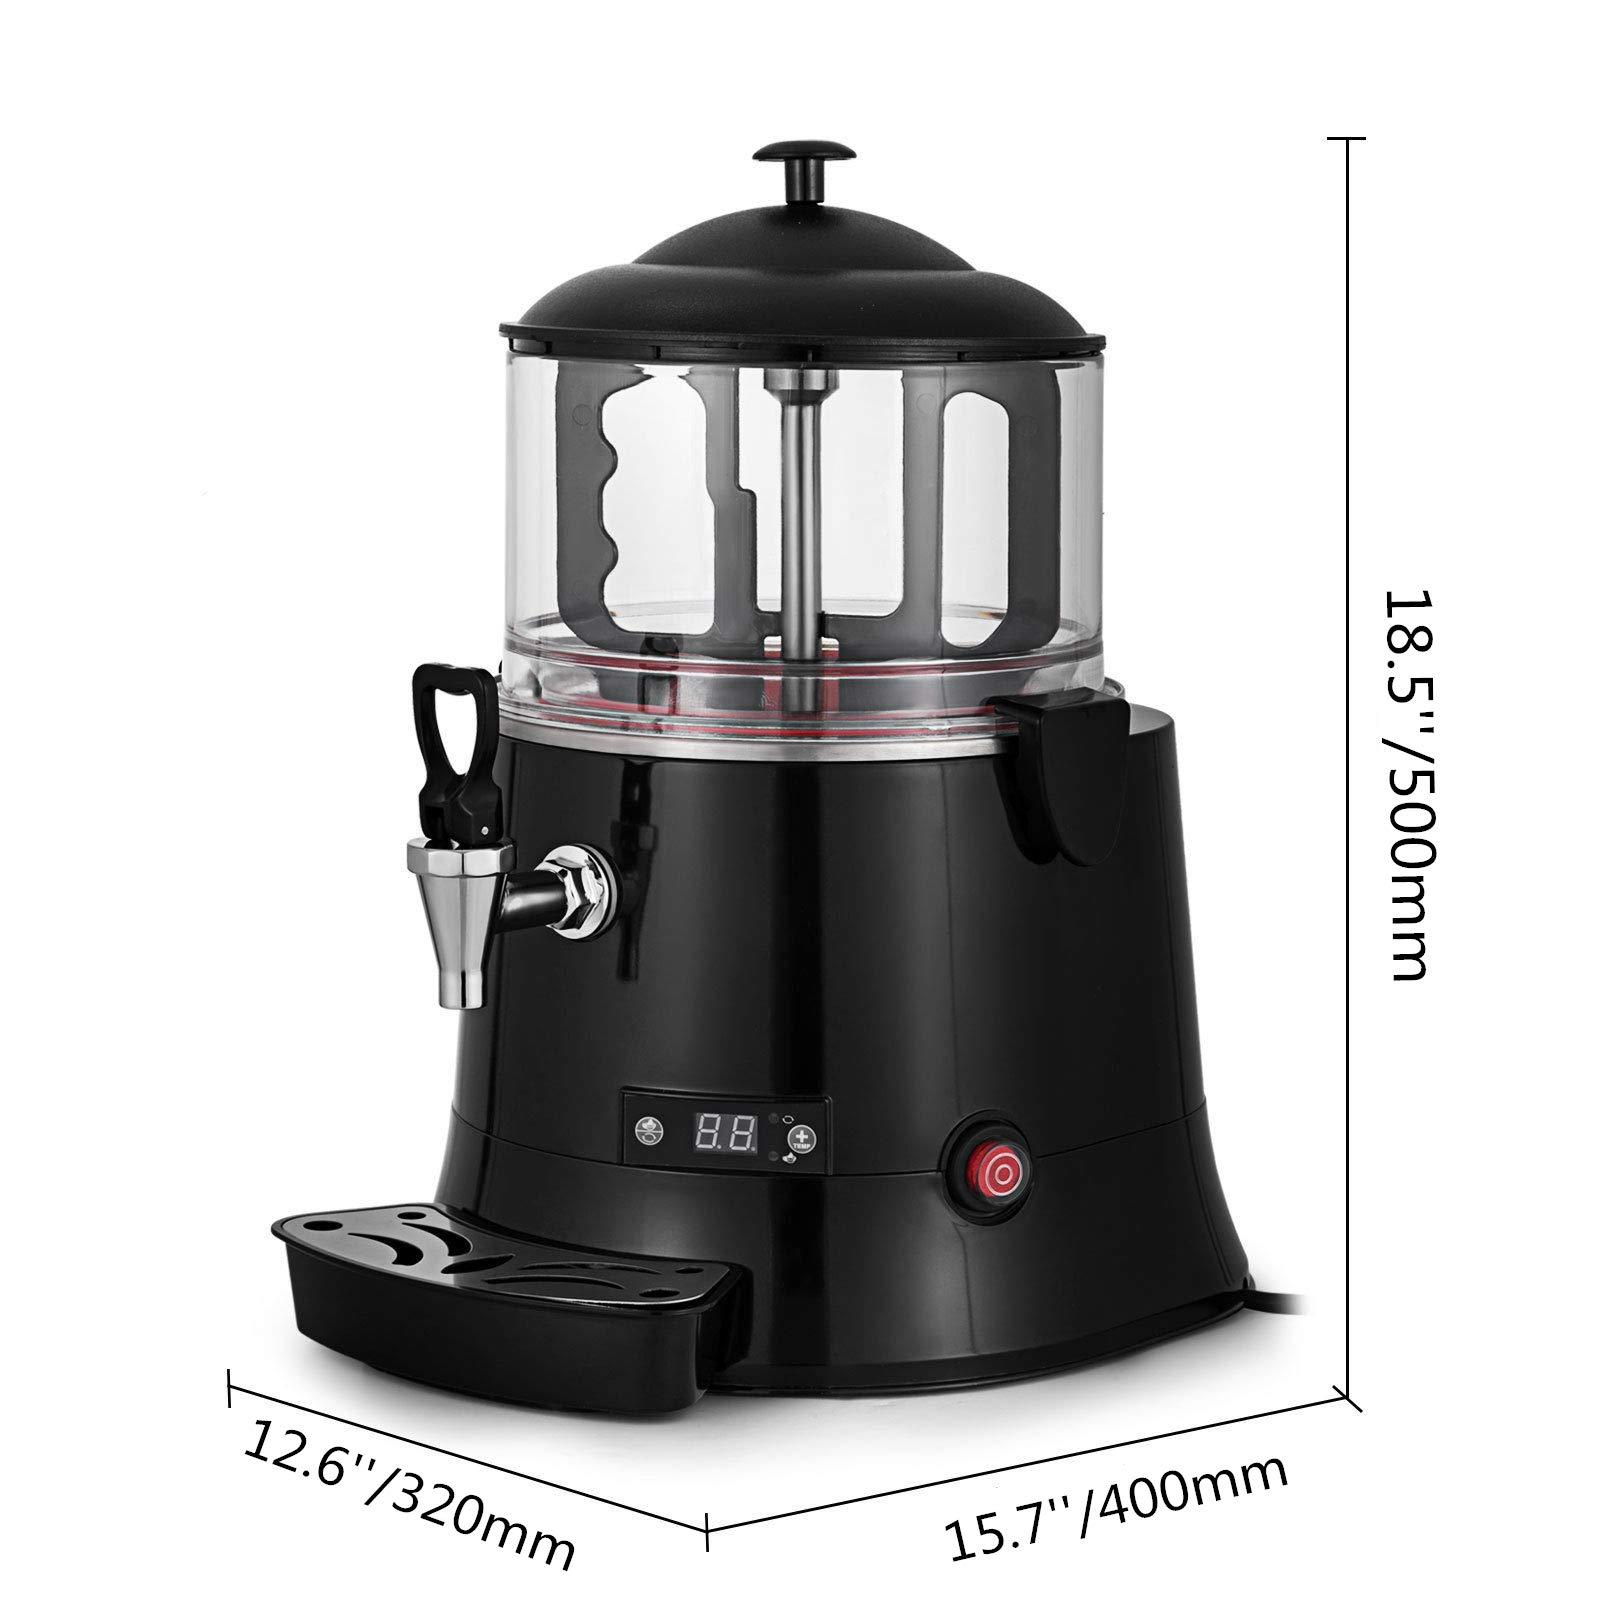 Shiny Silver Color 10 Liter Capacity Industrial Size Commercial Hot Chocolate Maker Drinking Machine Electric Hot Chocolate Beverage Dispenser 220V 22.05 lb